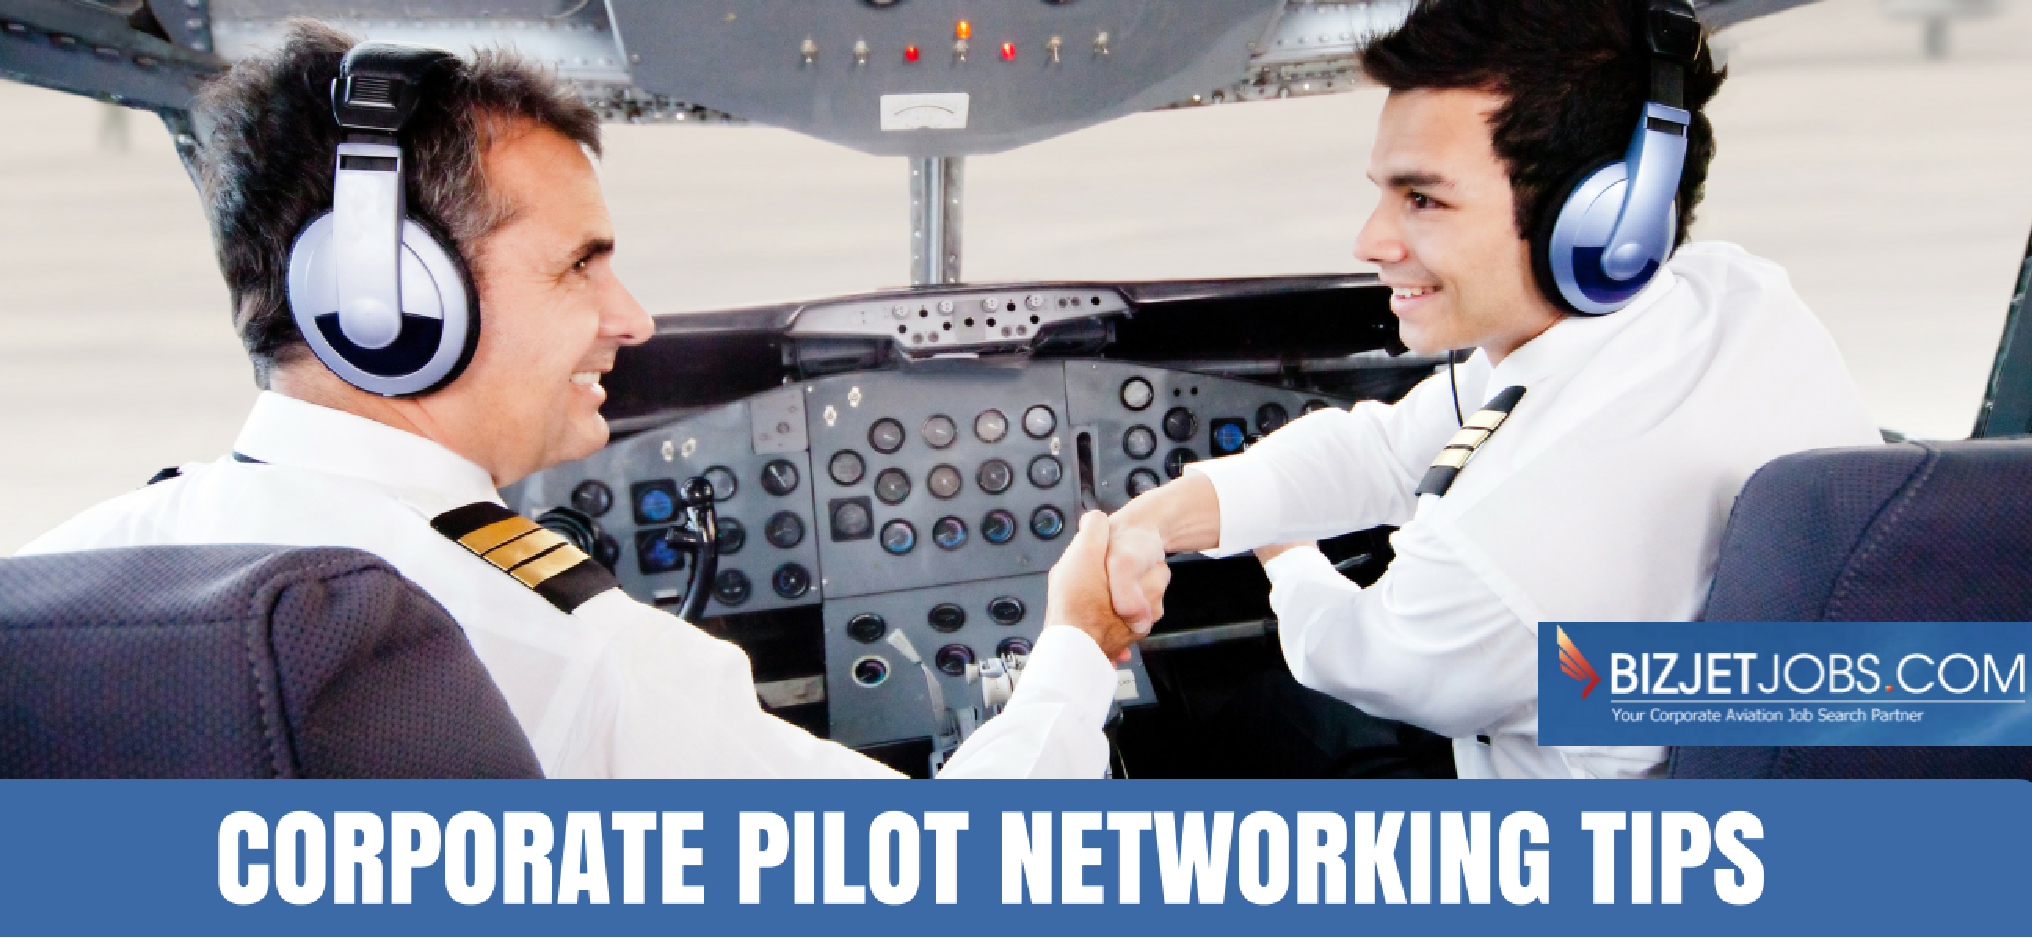 airline pilots want to go corporate networking advice you re a professional pilot you want to fly jets but the airline life is just not for you what to do go corporate